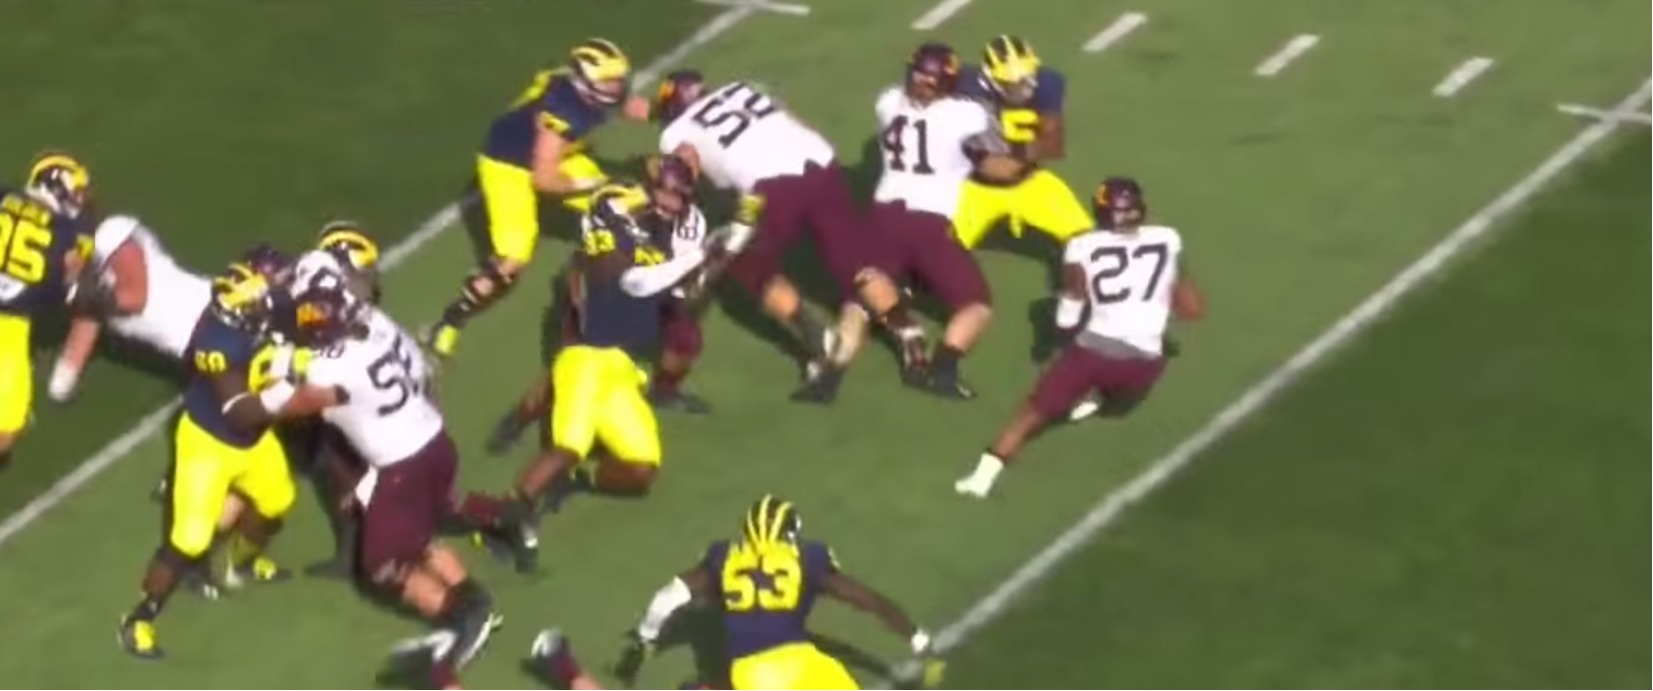 RSP Film Room No.13: RB David Cobb w/Emory Hunt